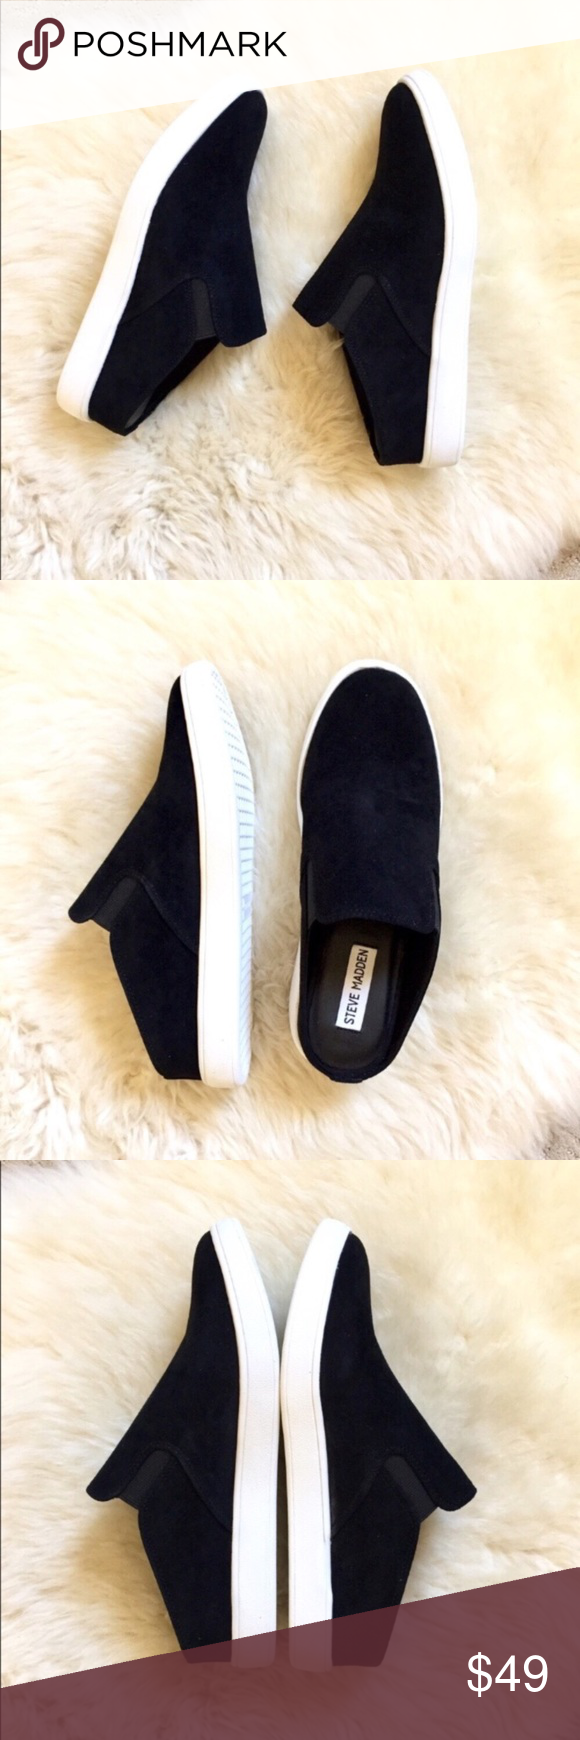 74c6cb0800a Steve Madden Black Suede Ezekiel Slip-On Sneakers New In Box- Steve ...